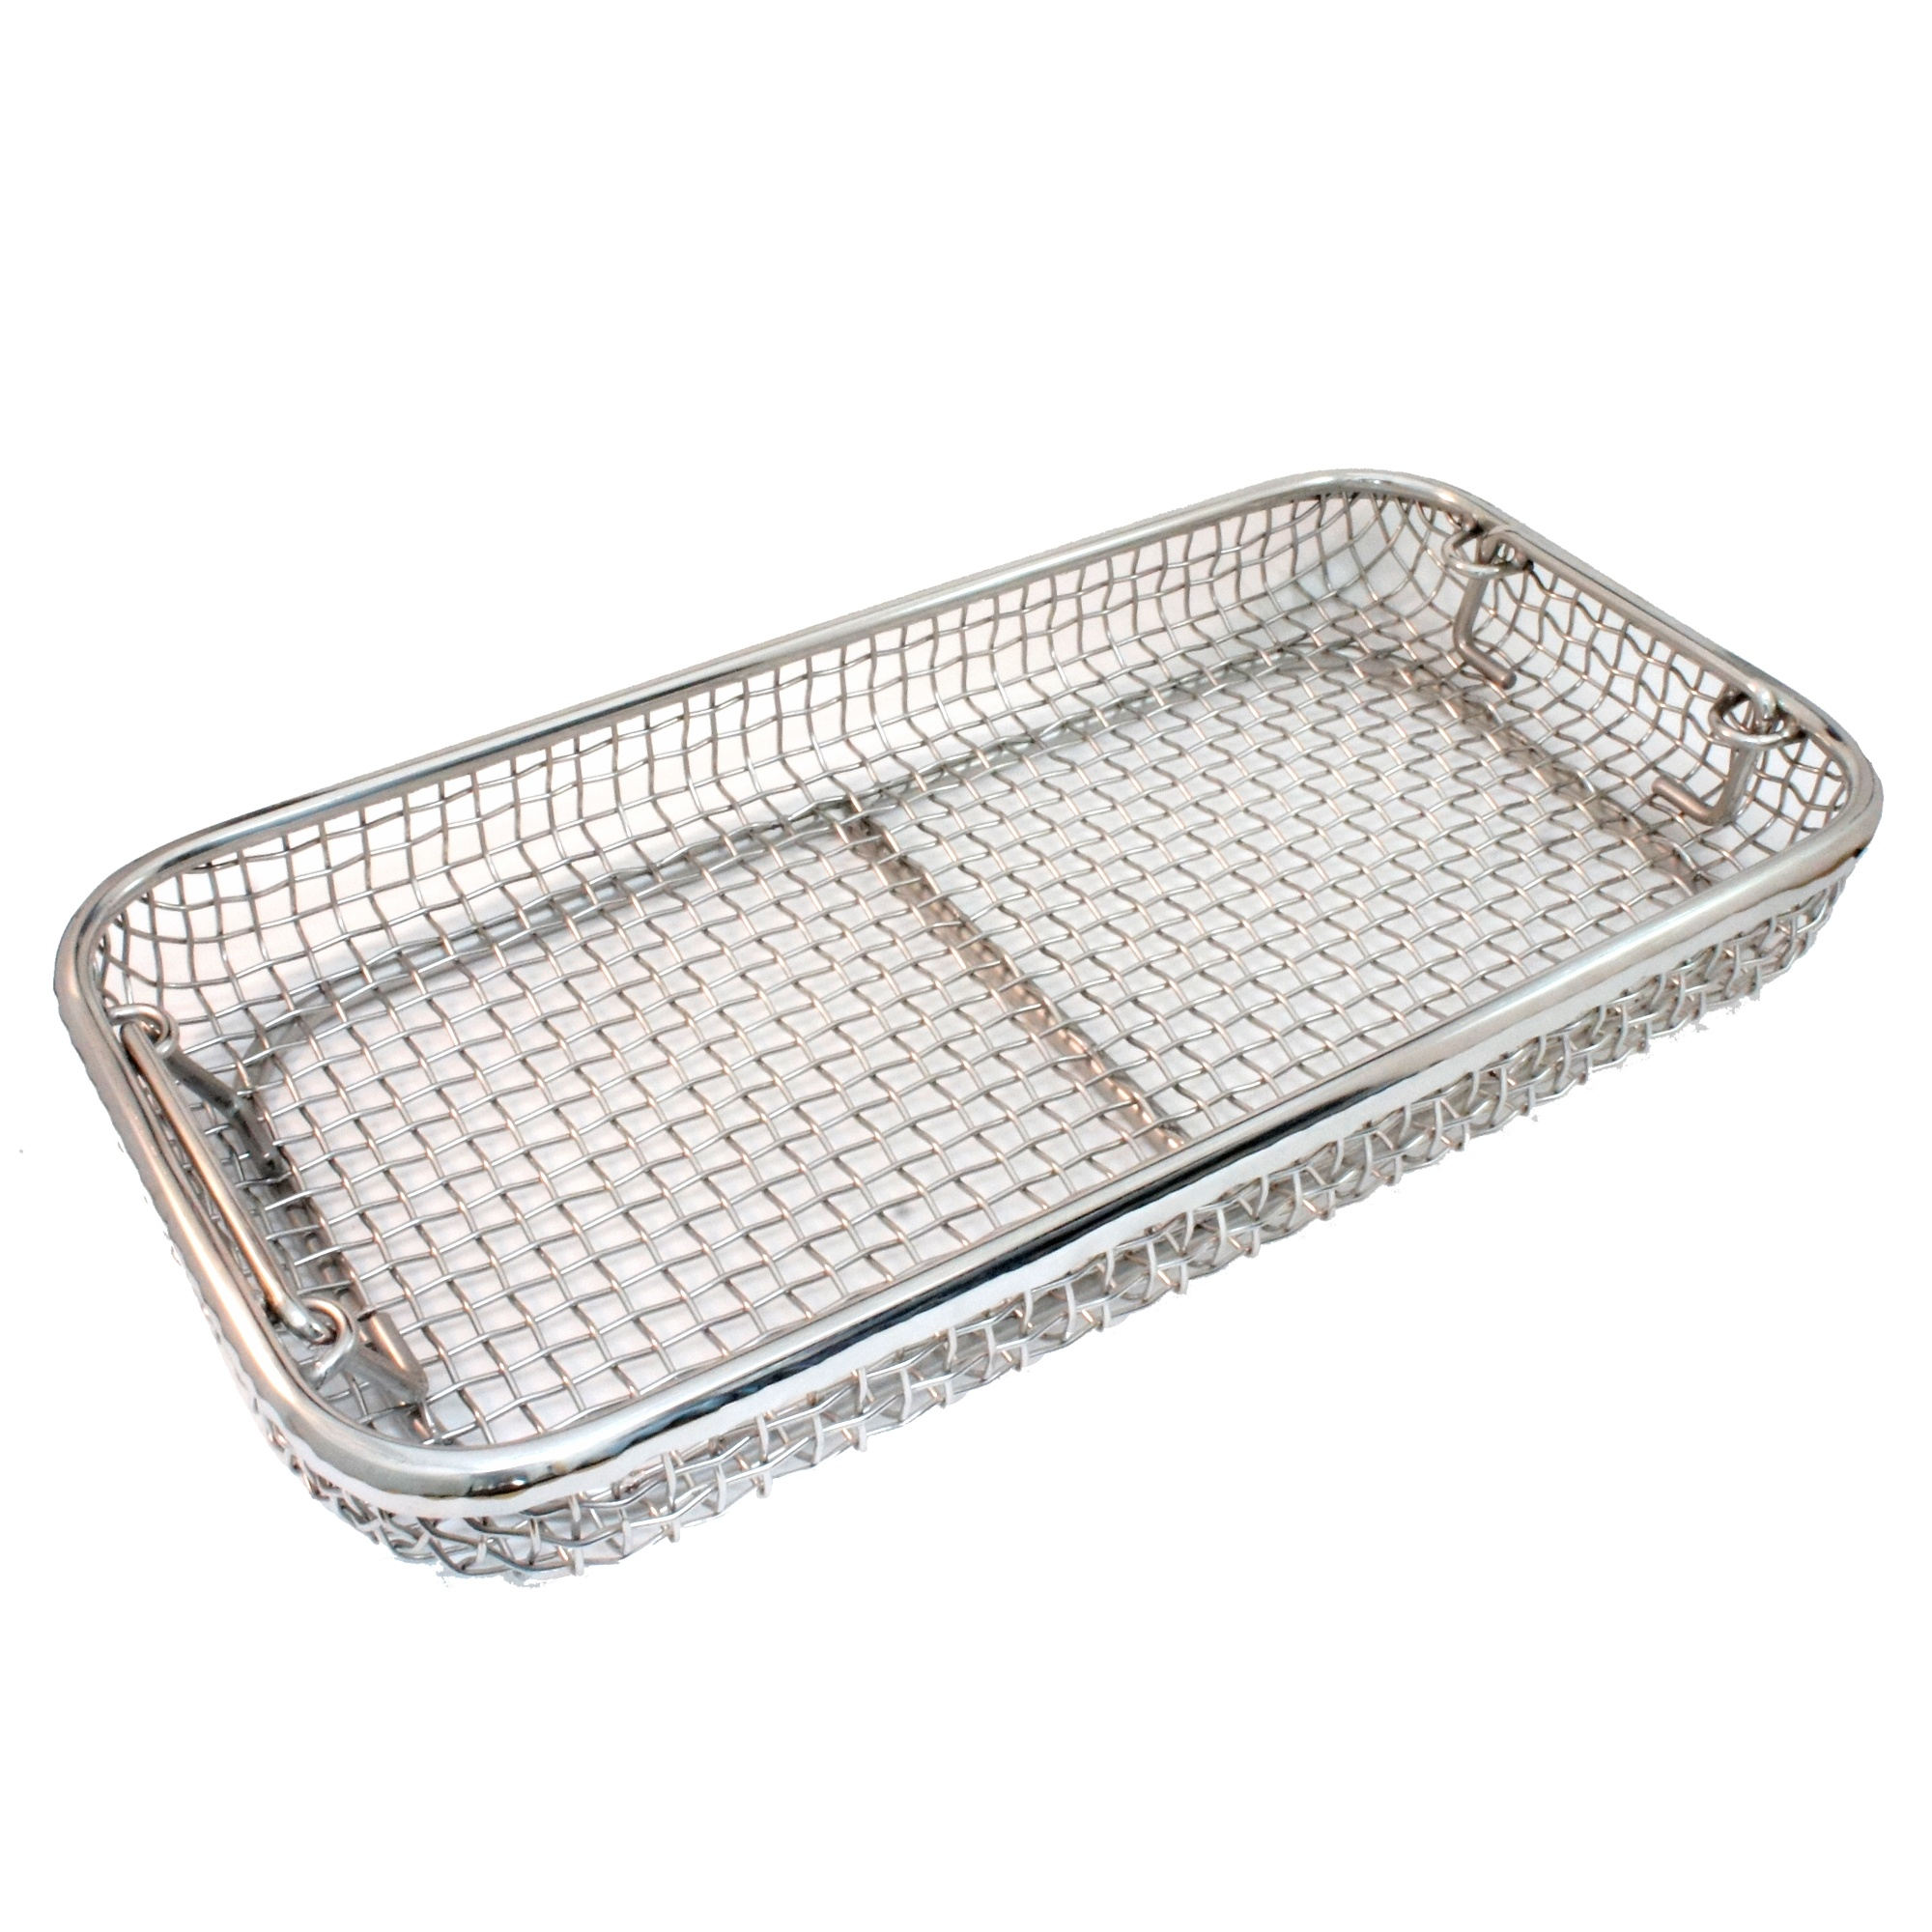 Mesh basket with handles Image